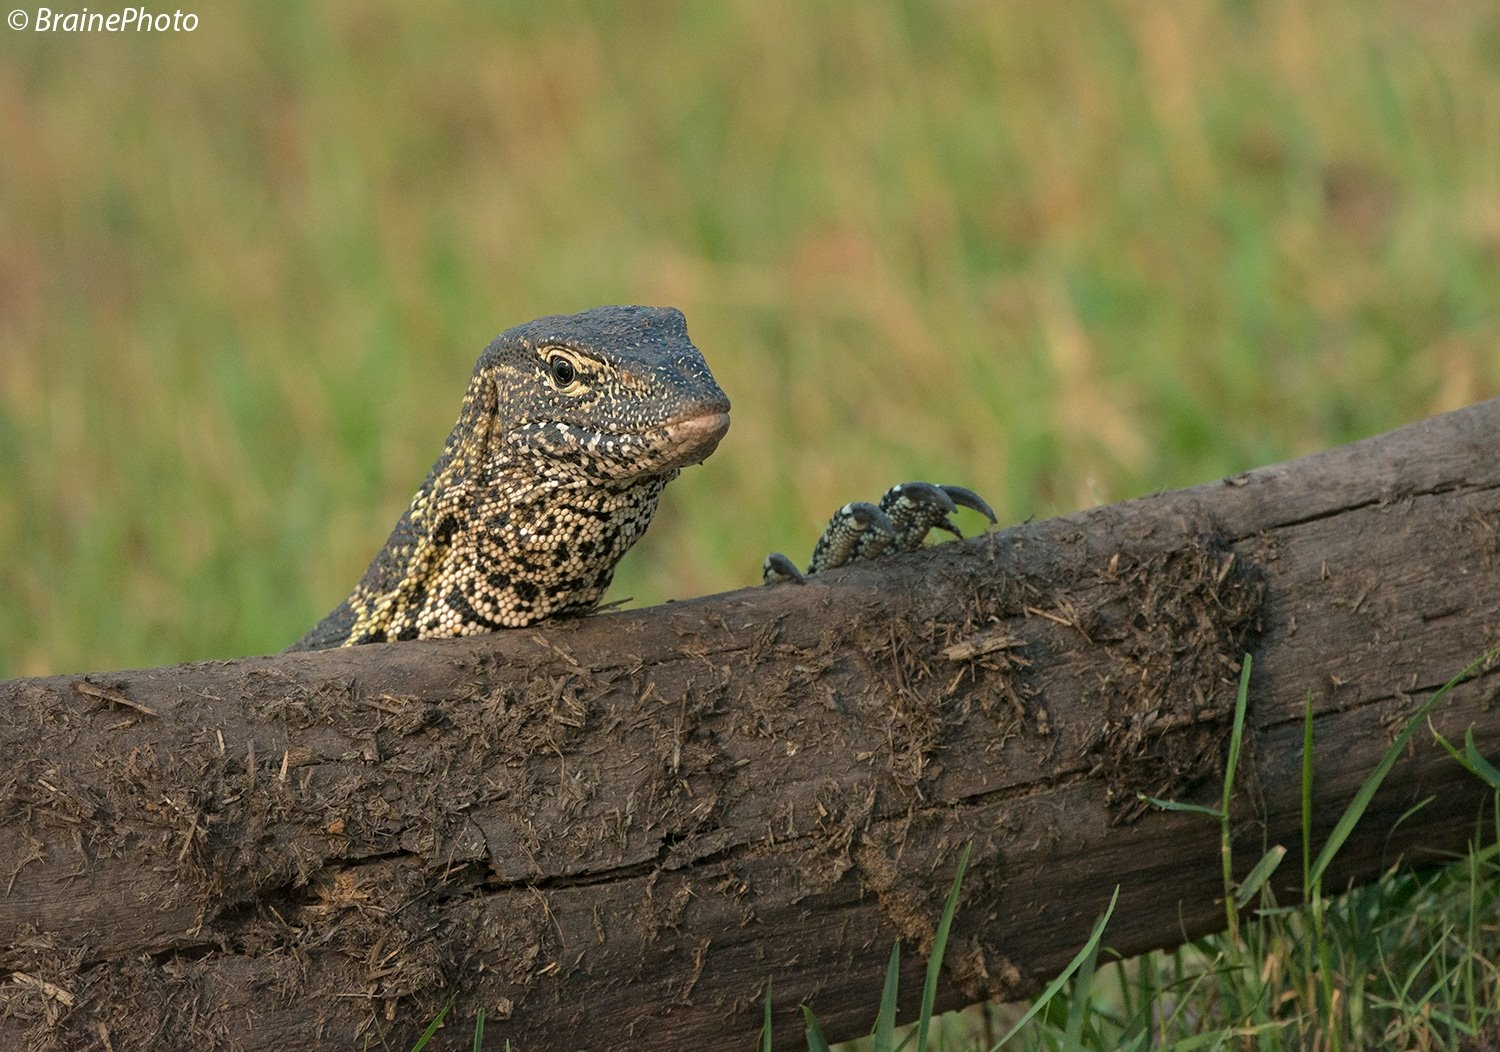 This Nile Monitor (Varanus Niloticus) can be found all along the Kunene, Kavango, Okavango, Kwando and Zambezi River in Namibia. We make a special effort to find them on our birding, reptile and photographic safaris.